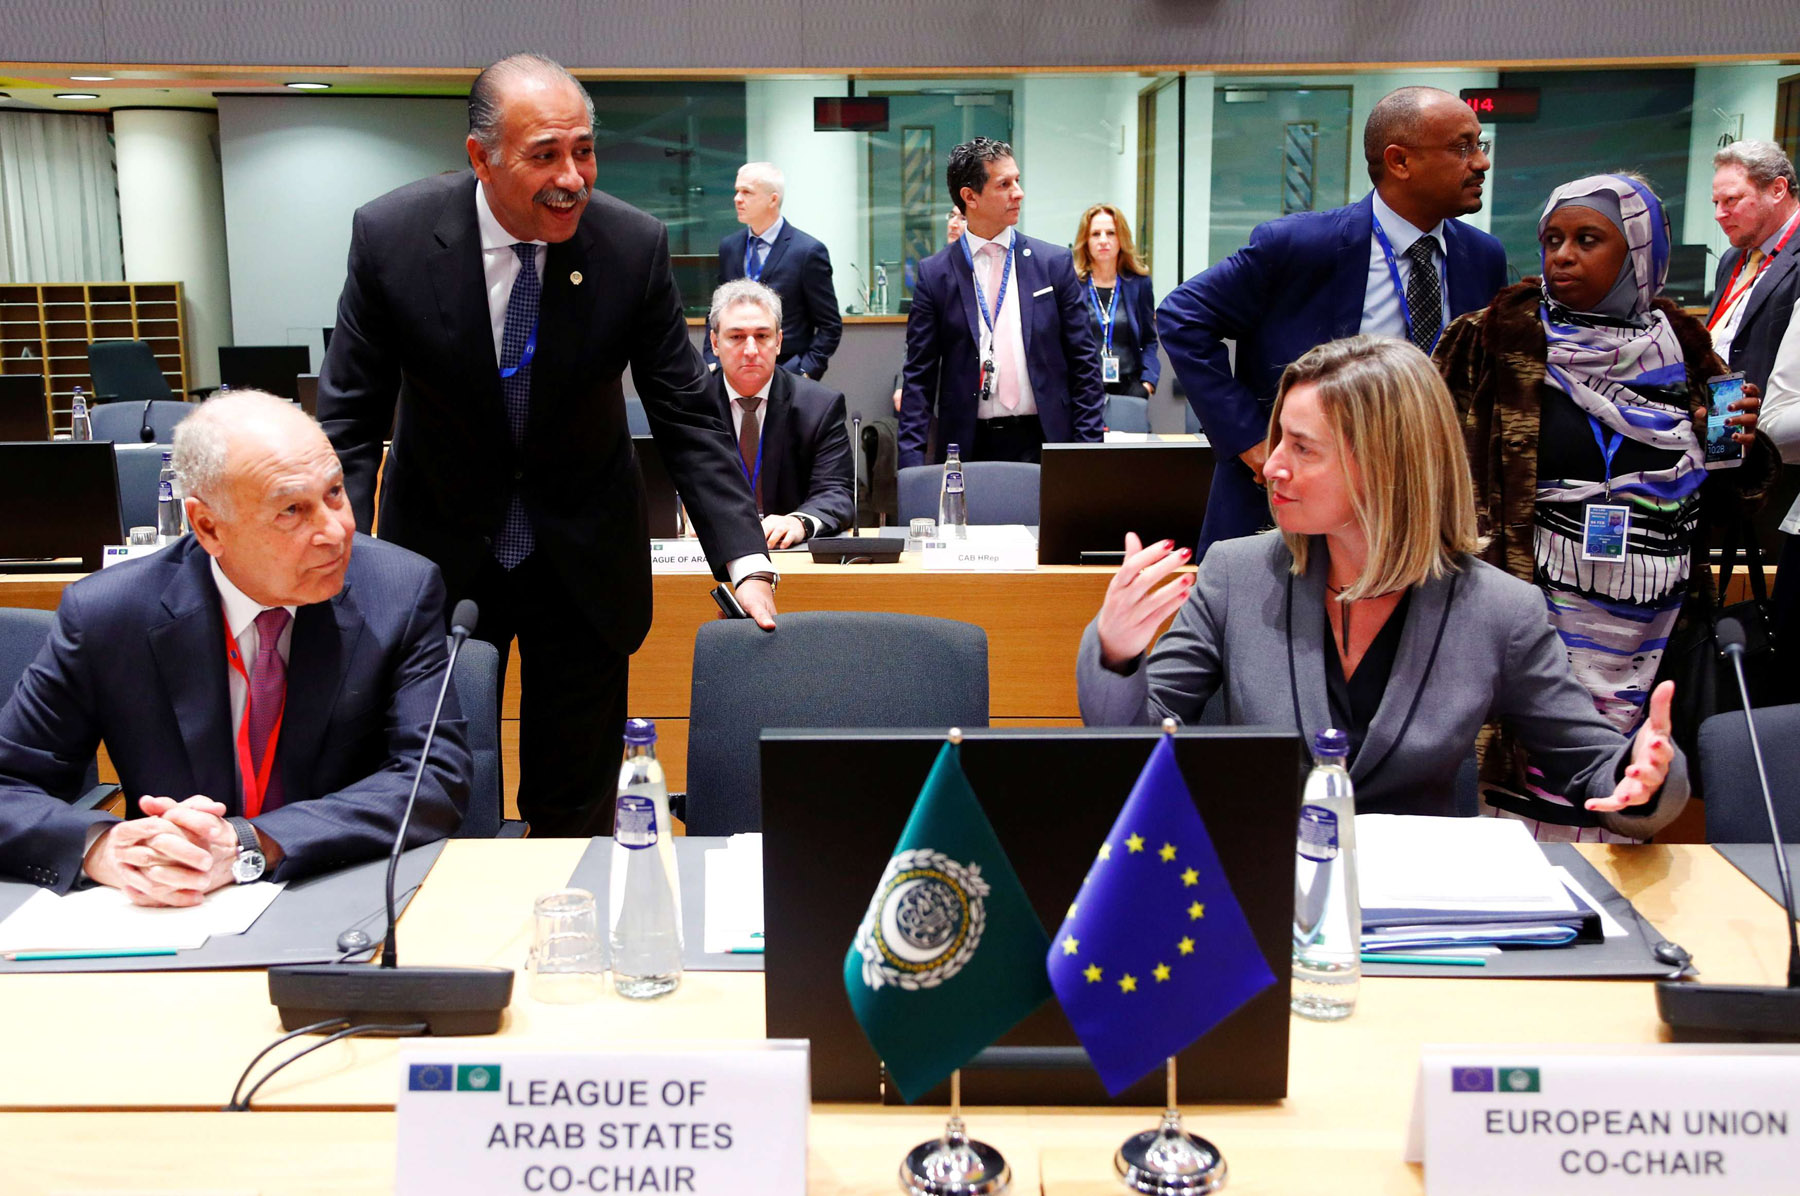 Arab League Secretary-General Ahmed Abul Gheit and EU foreign policy chief Federica Mogherini attend a joint meeting of European Union and League of Arab States foreign ministers in Brussels, Belgium, on February 4, 2019. (AFP)